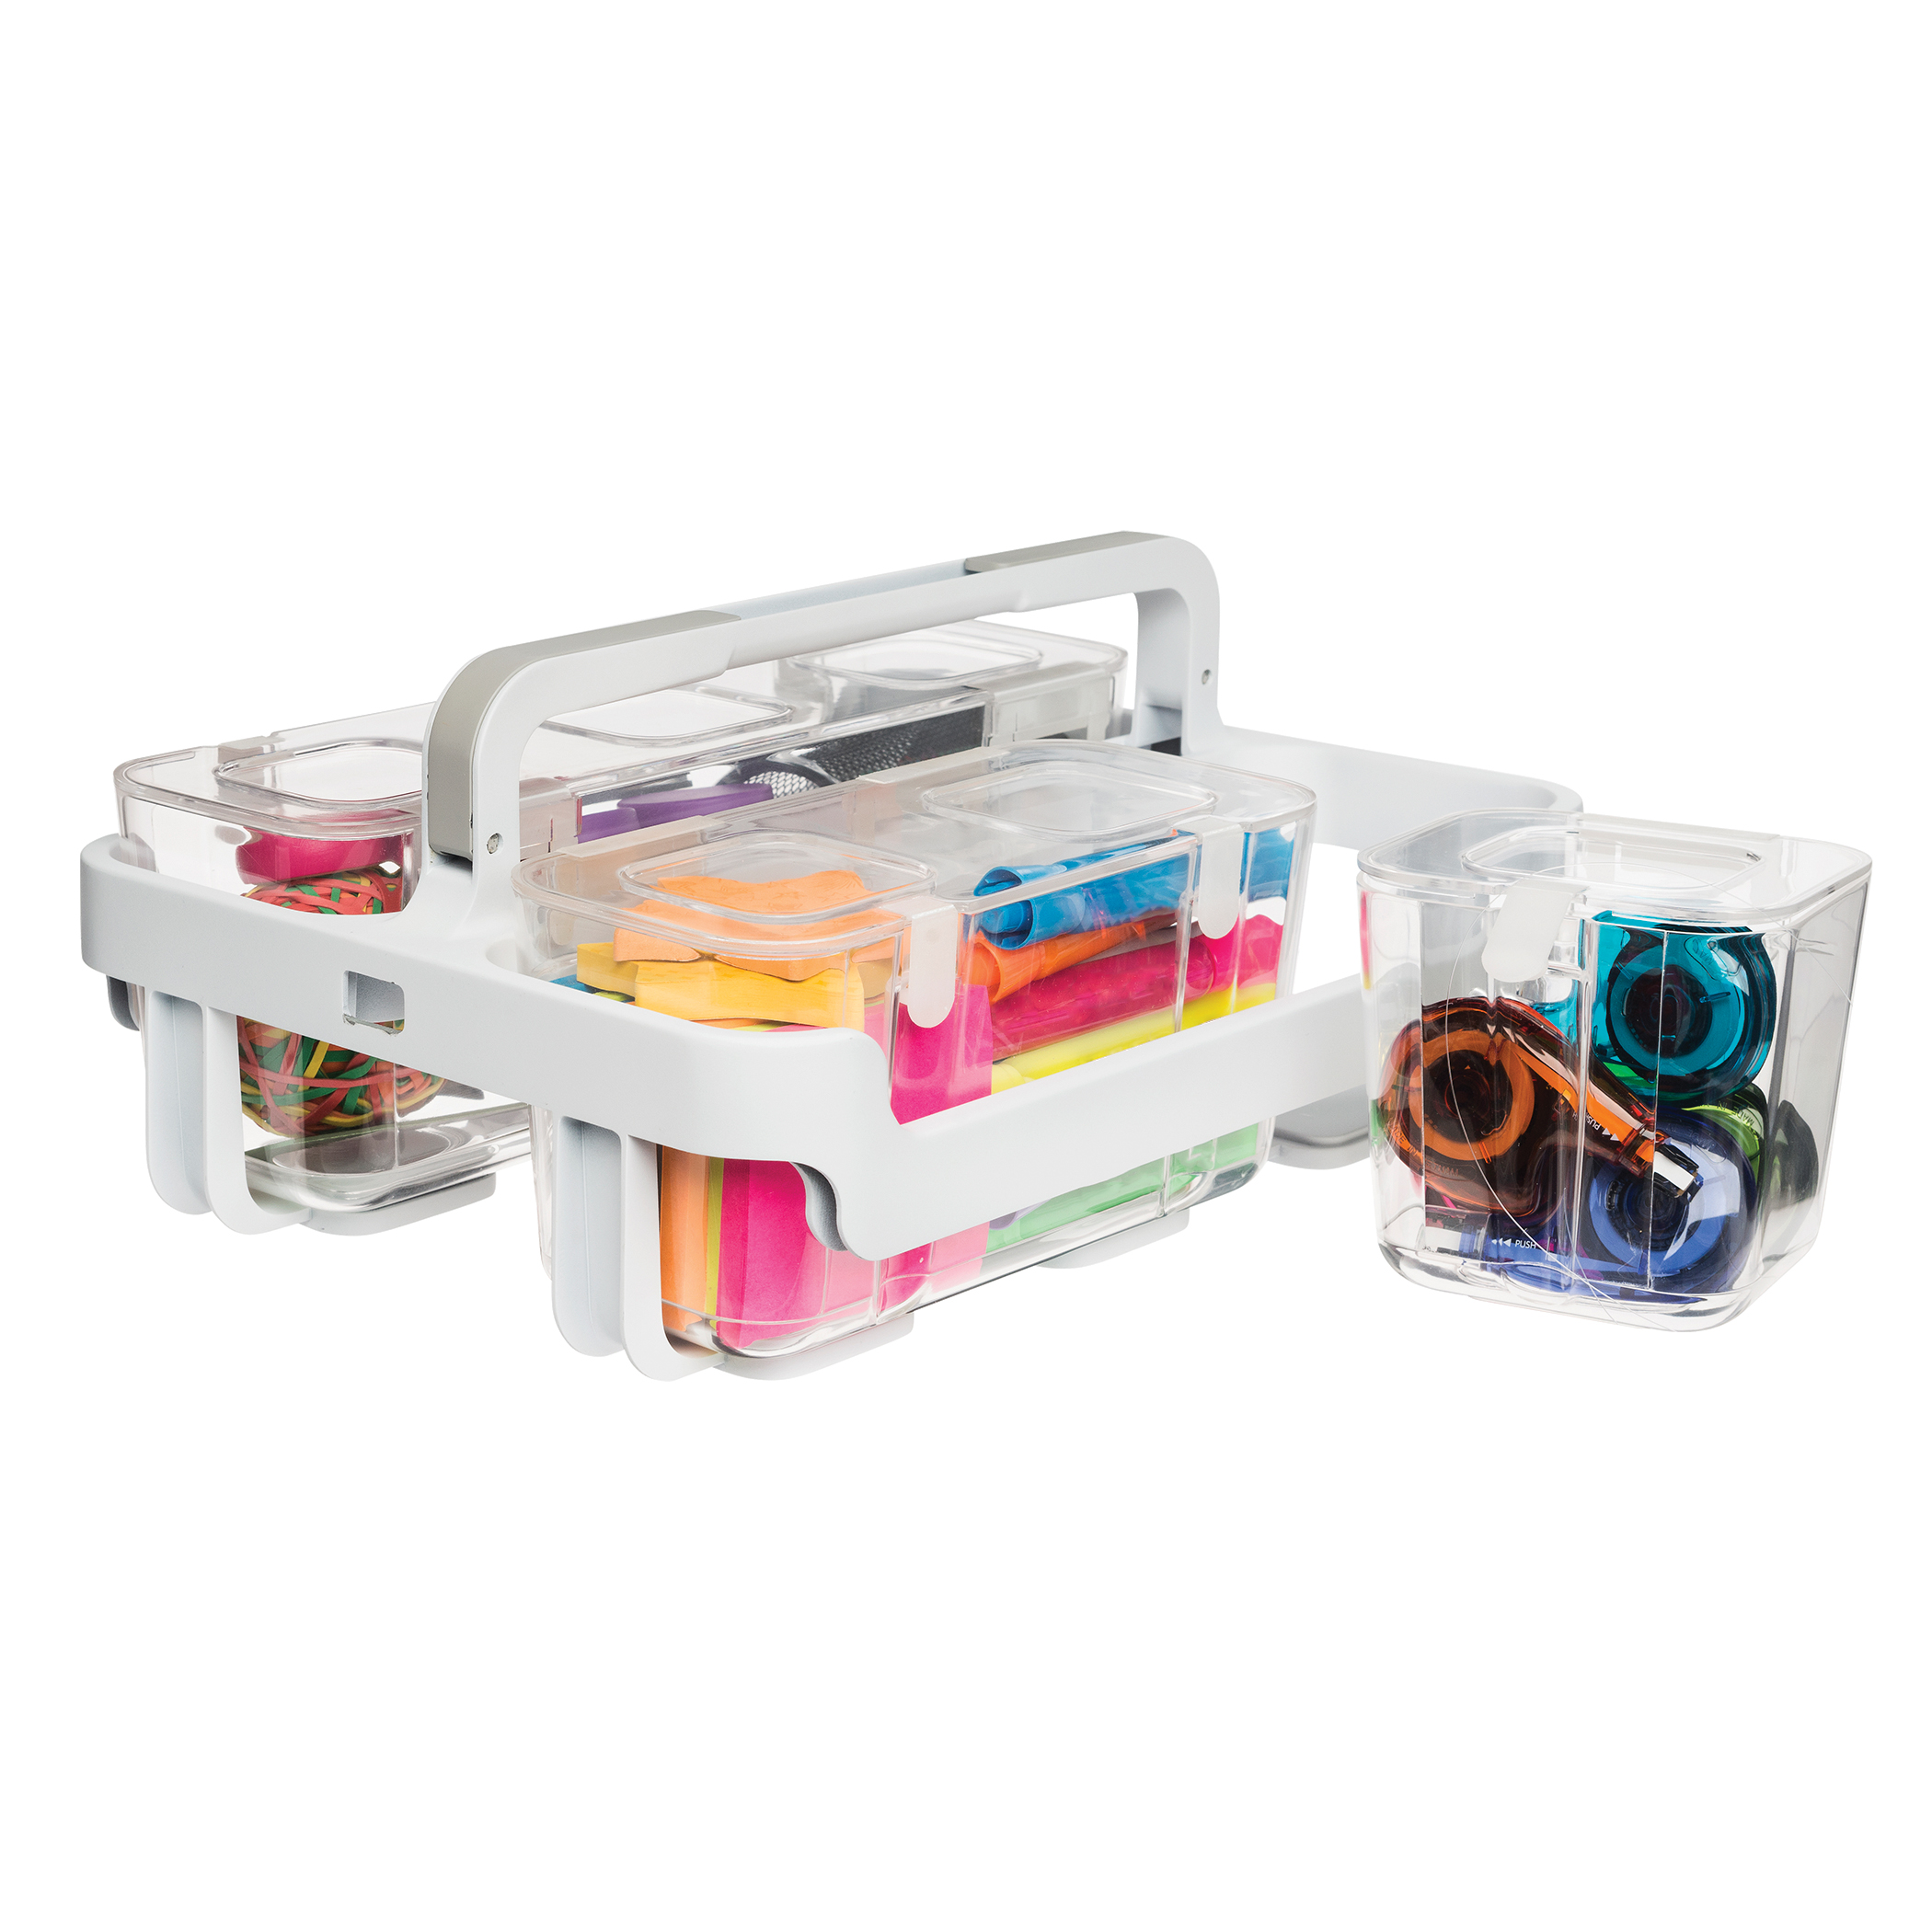 Other Art Supplies Storestack 9 Litre Clear W430xd360xh90mm Storage Box Rb75897